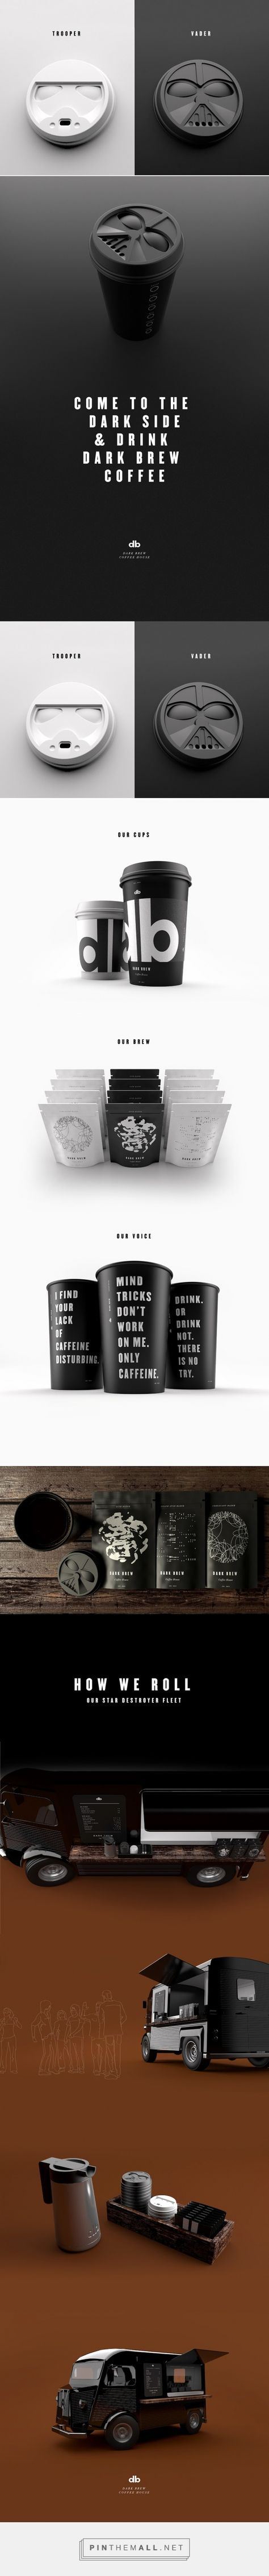 Dark Brew Coffee House - star wars trooper vader concept by Spencer Davis & Scott Schenone - http://www.packagingoftheworld.com/2015/12/dark-brew-coffee-house-concept.html